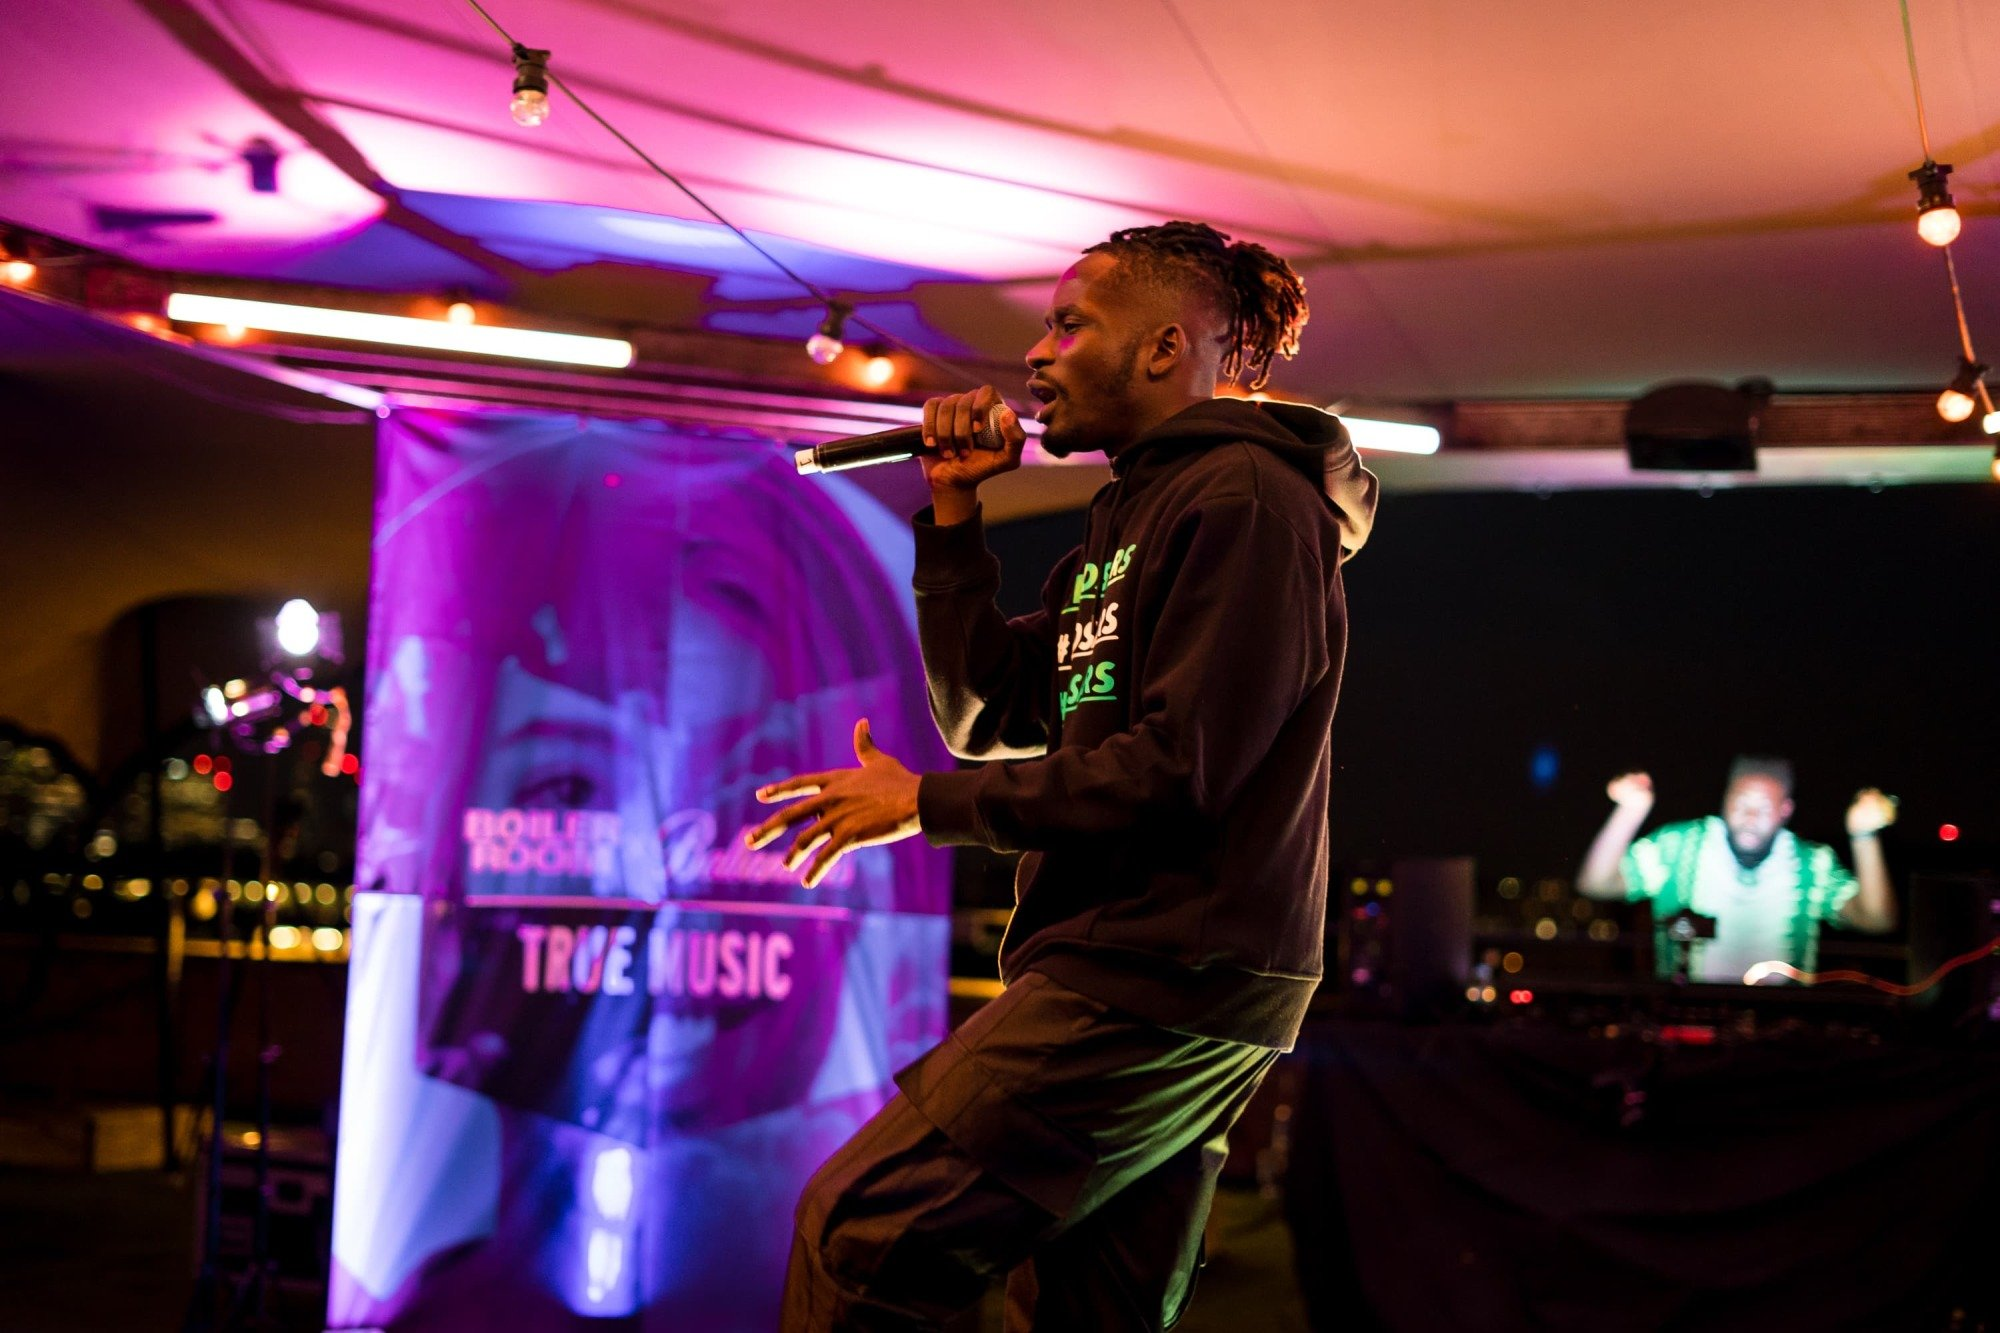 Ballantines Boiler Room True Music In The Round Mr Eazi performing